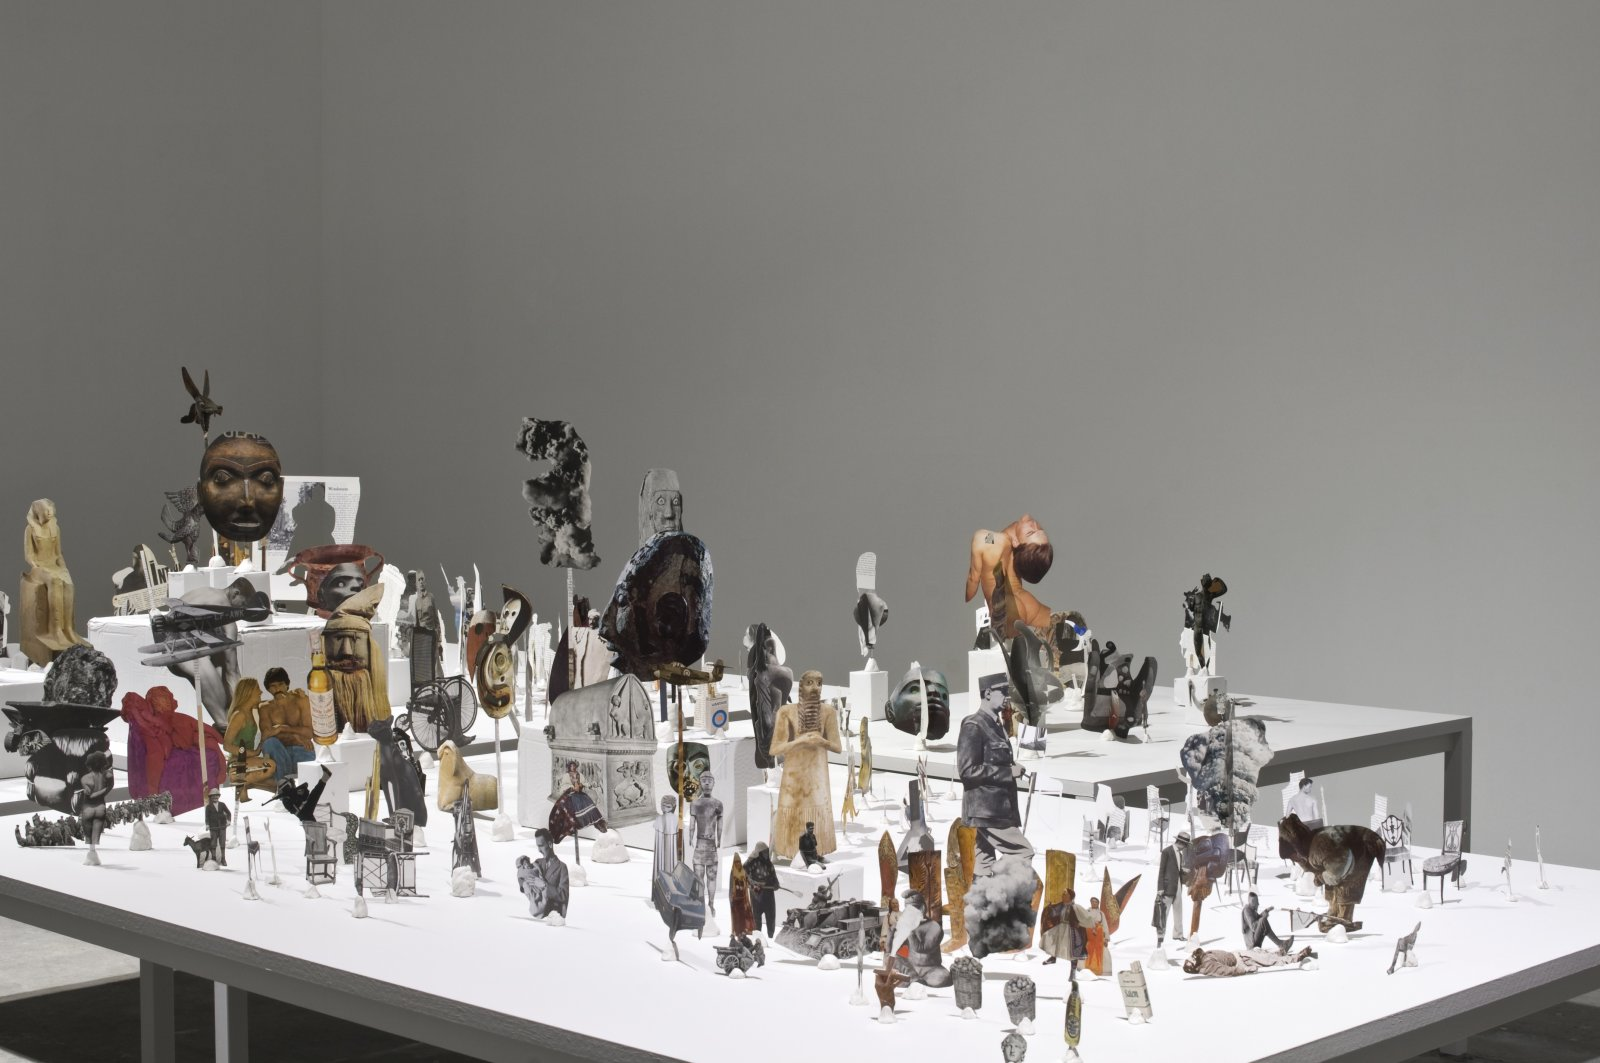 Geoffrey Farmer, Untitled (Standing Image Archive), 2011, approximately 500 magazine cut-outs with stands upon five tables, fireplace, broom, dimensions variable. Installation view, Untitled (12th Istanbul Biennial), Istanbul, 2011 by Geoffrey Farmer